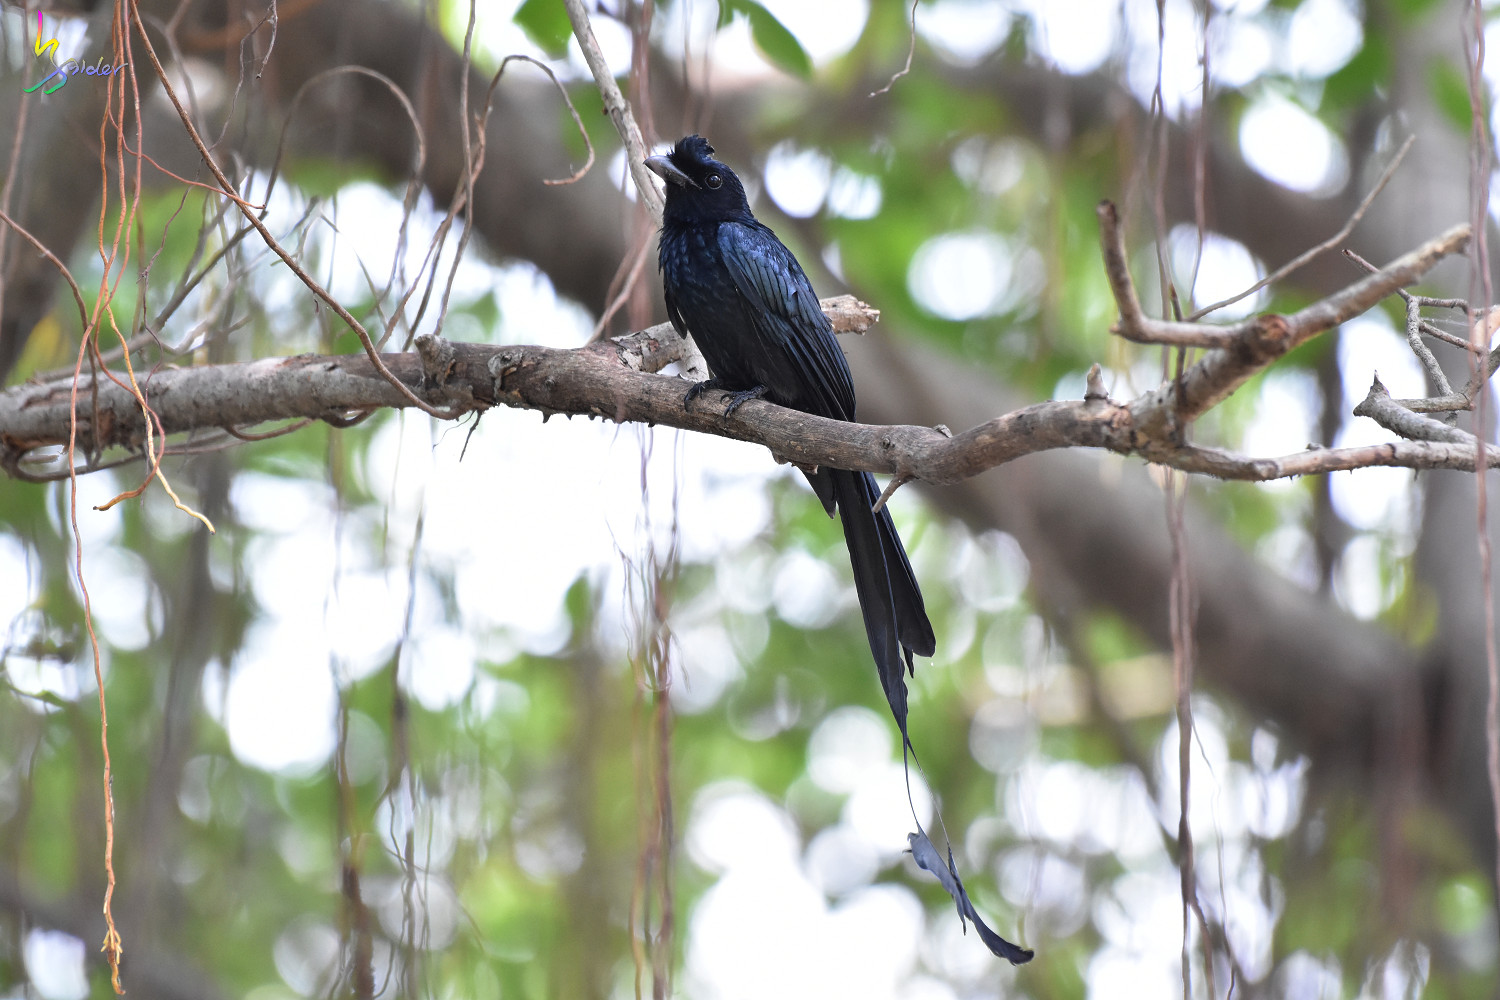 Greater_Racket-tailed_Drongo_4222